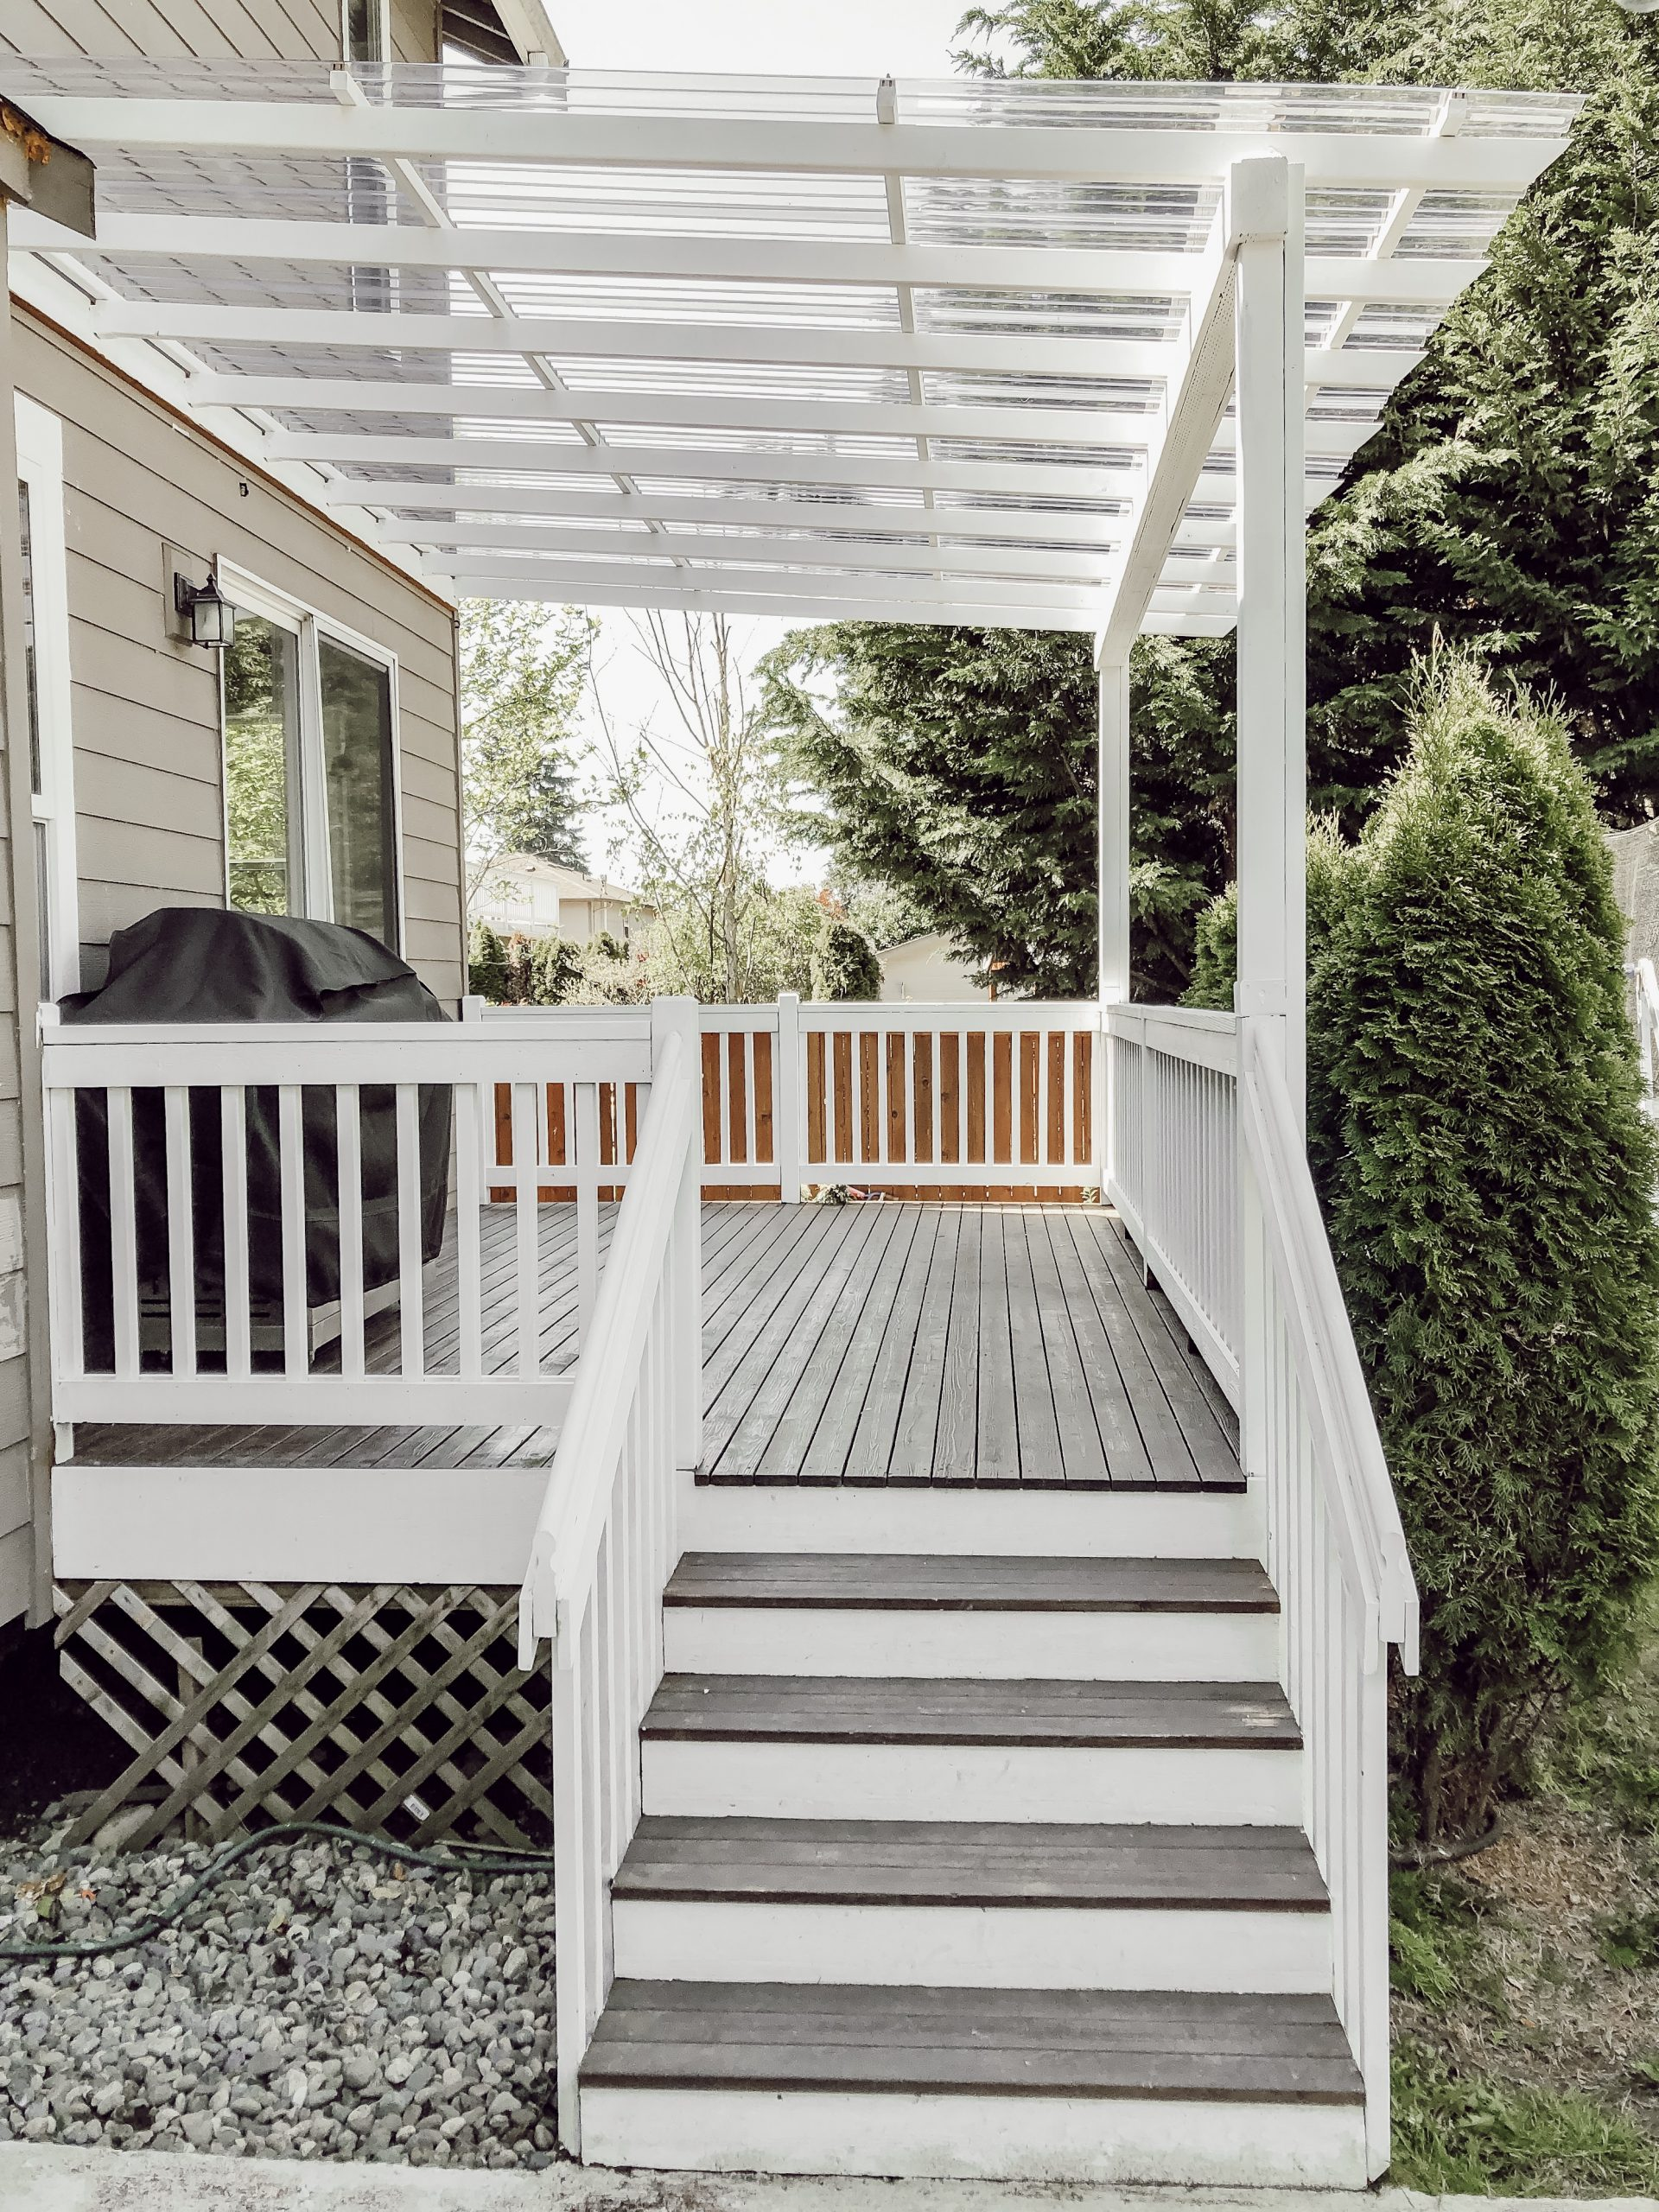 Diy Clear Corrugated Covered Pergola Attached To The House And An Existing Deck Rain And Pine